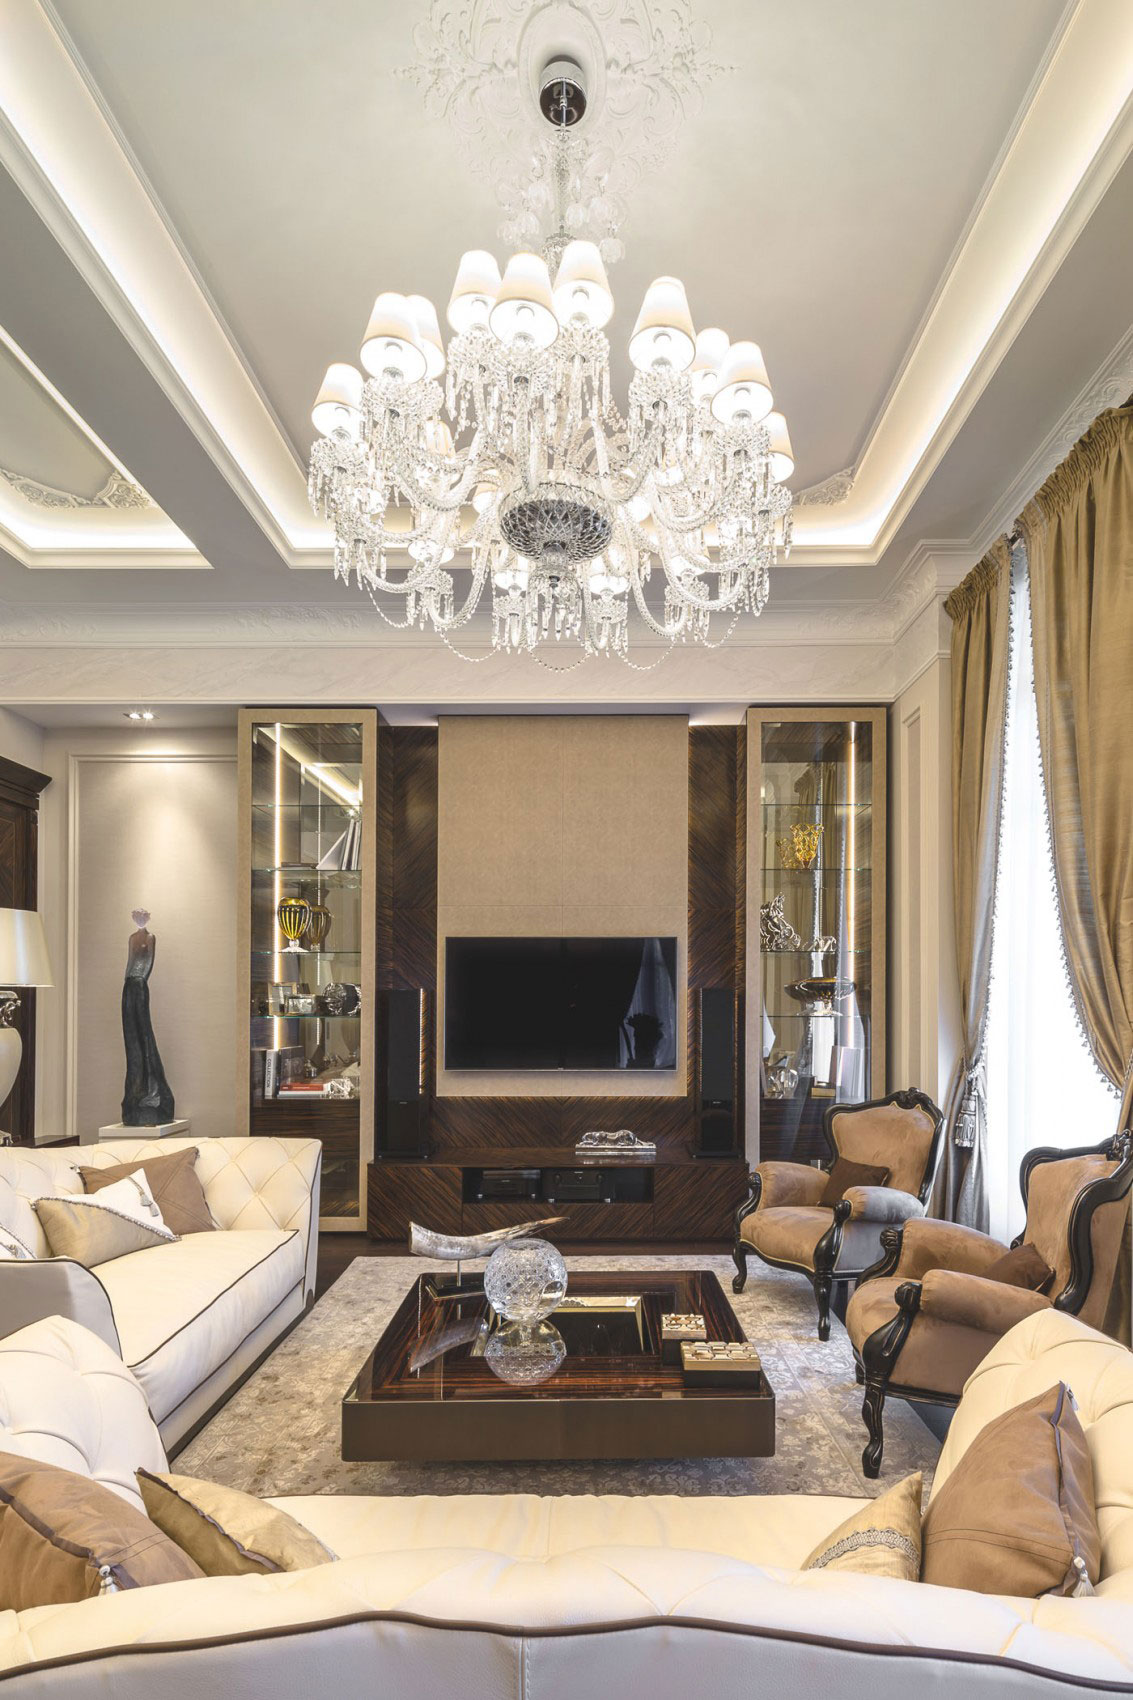 Chic Apartment Interior Design Created by NG Studio 5 Chic Apartment Interior Design Created by NG Studio